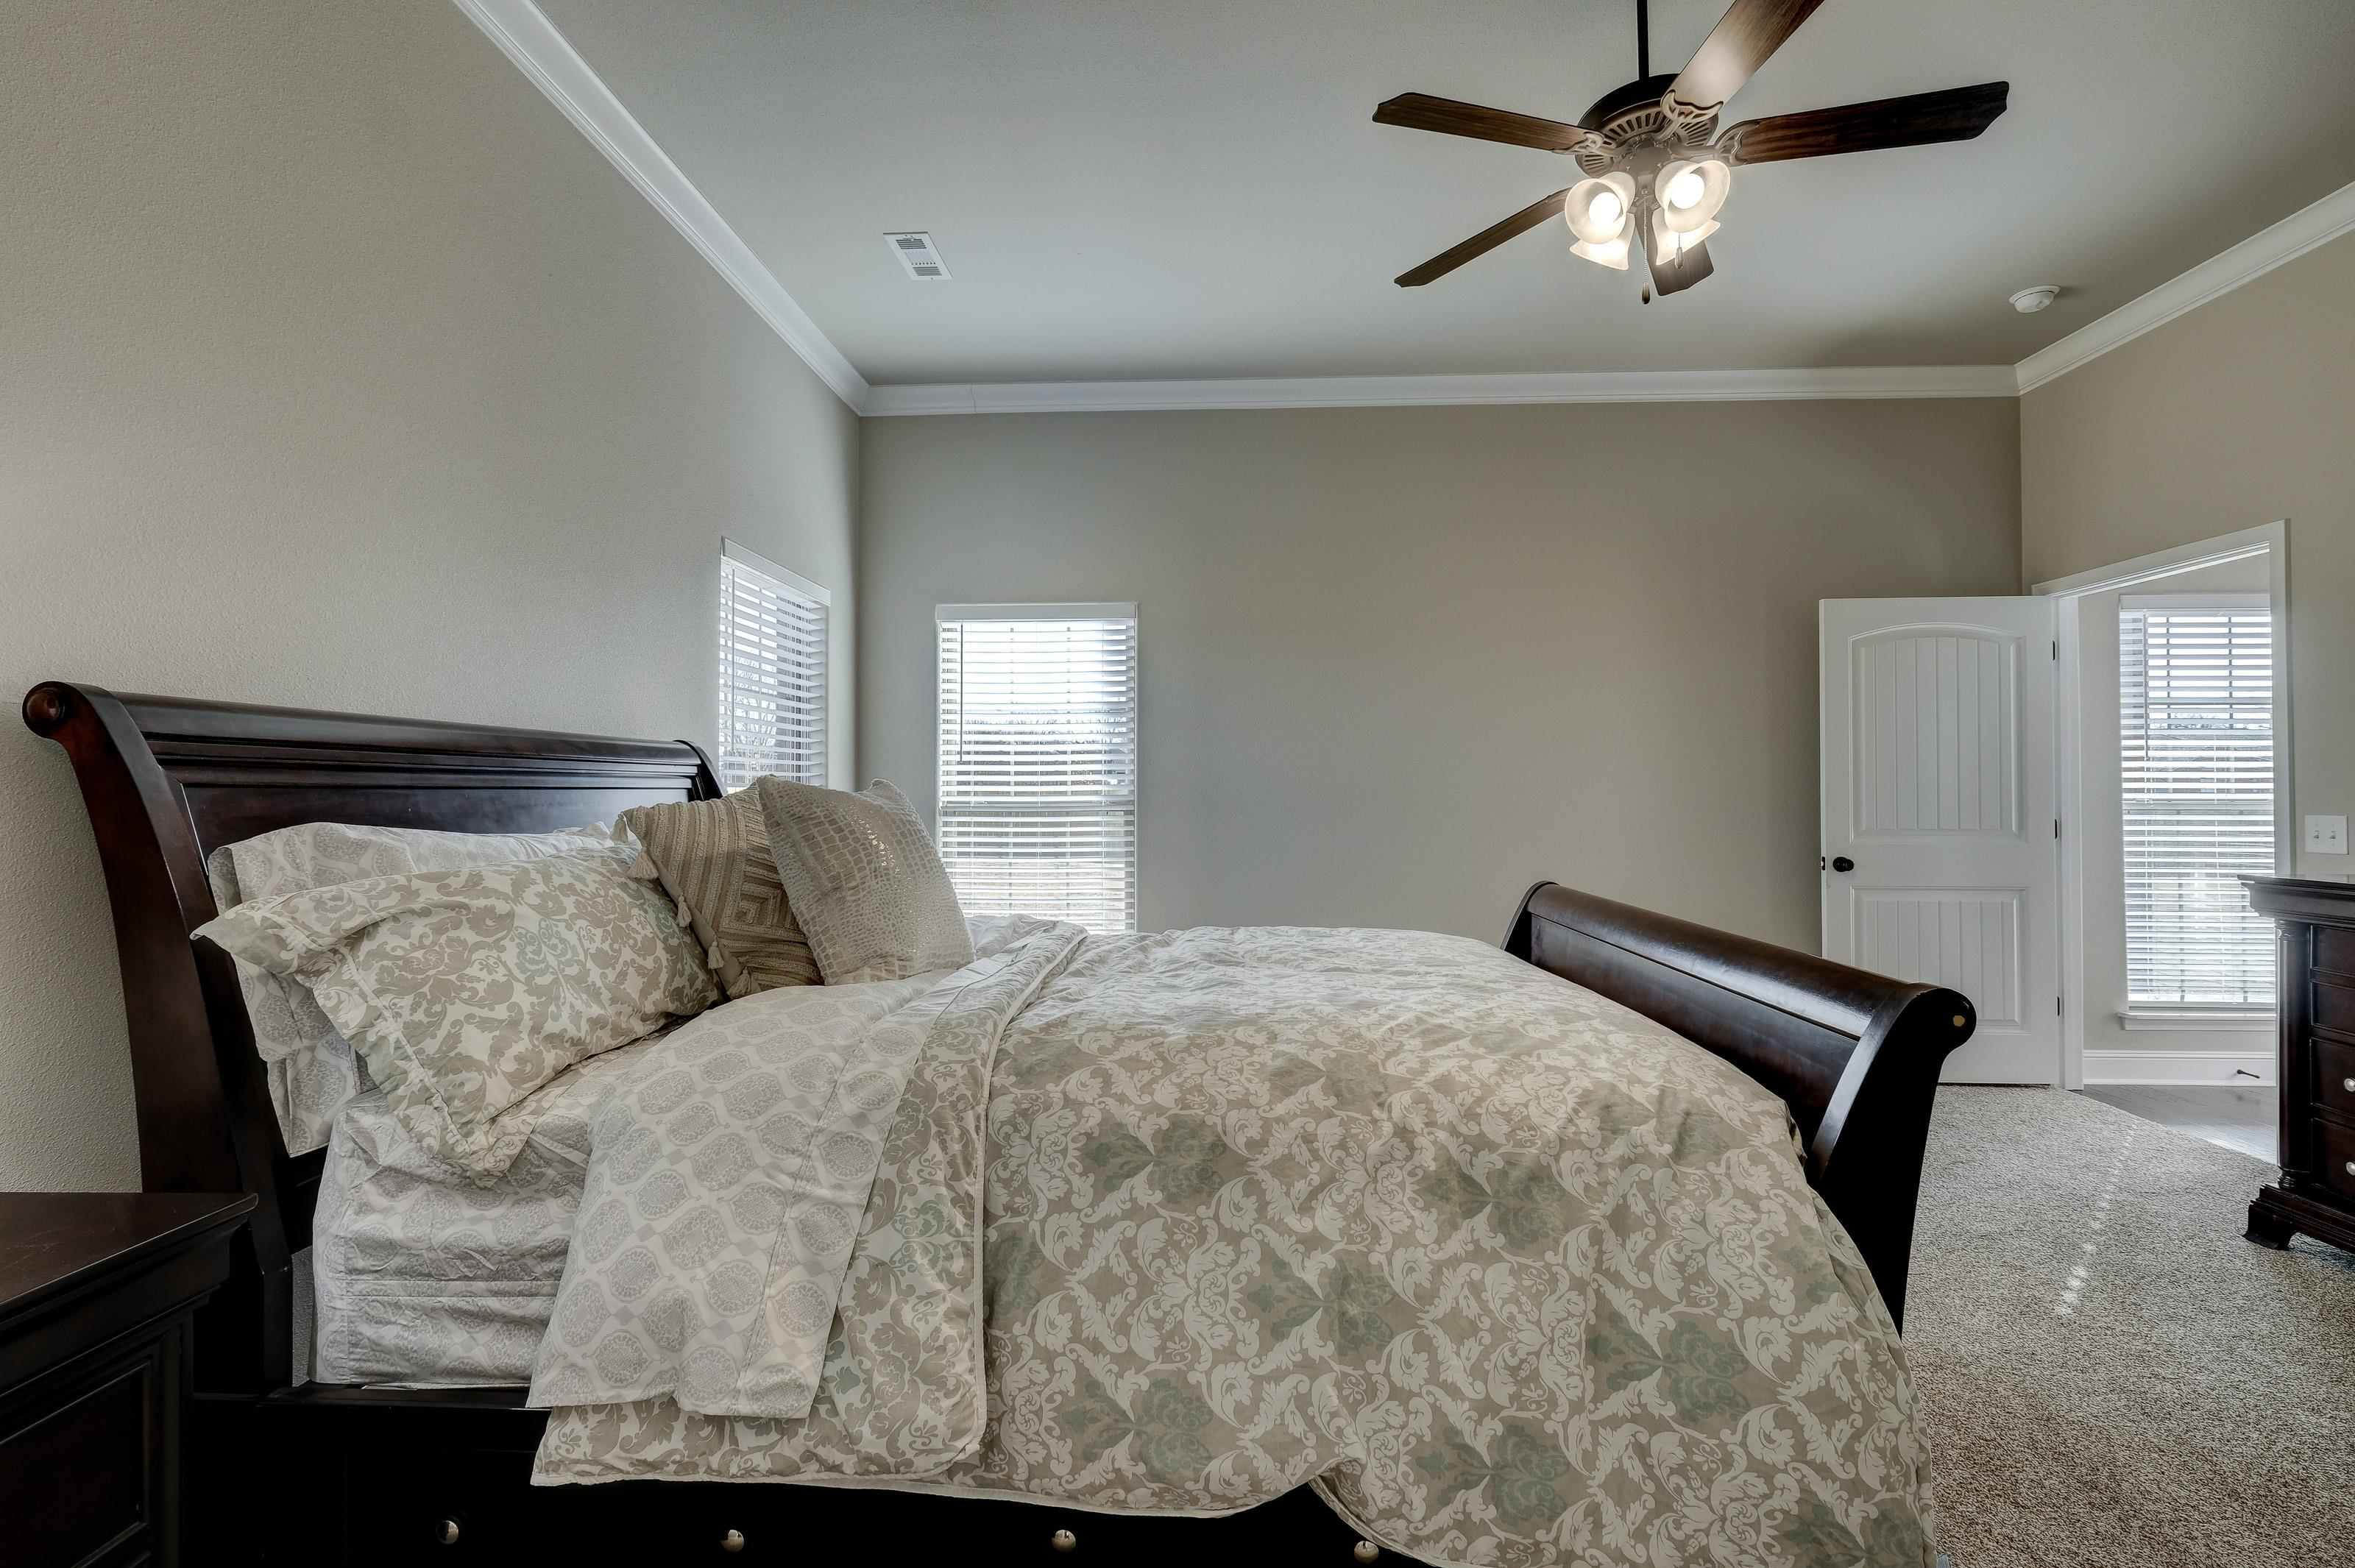 Bedroom featured in the 2600T Series By Schuber Mitchell Homes in Joplin, MO